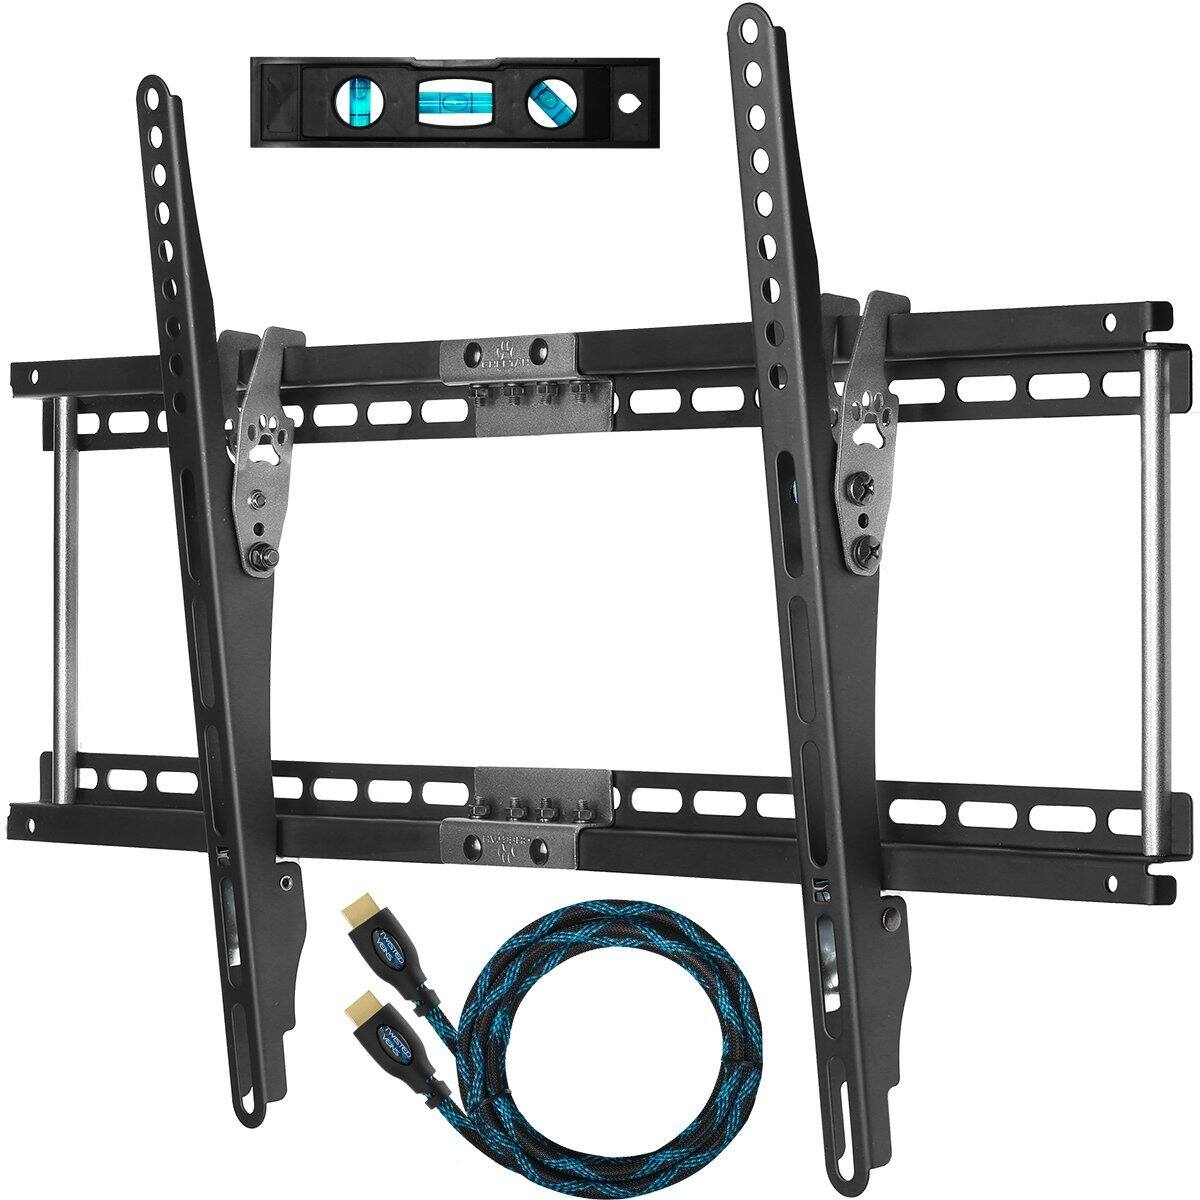 Cheetah wall mount bracket for 20 75 hdtvs 10 braided hdmi deal image fandeluxe Choice Image